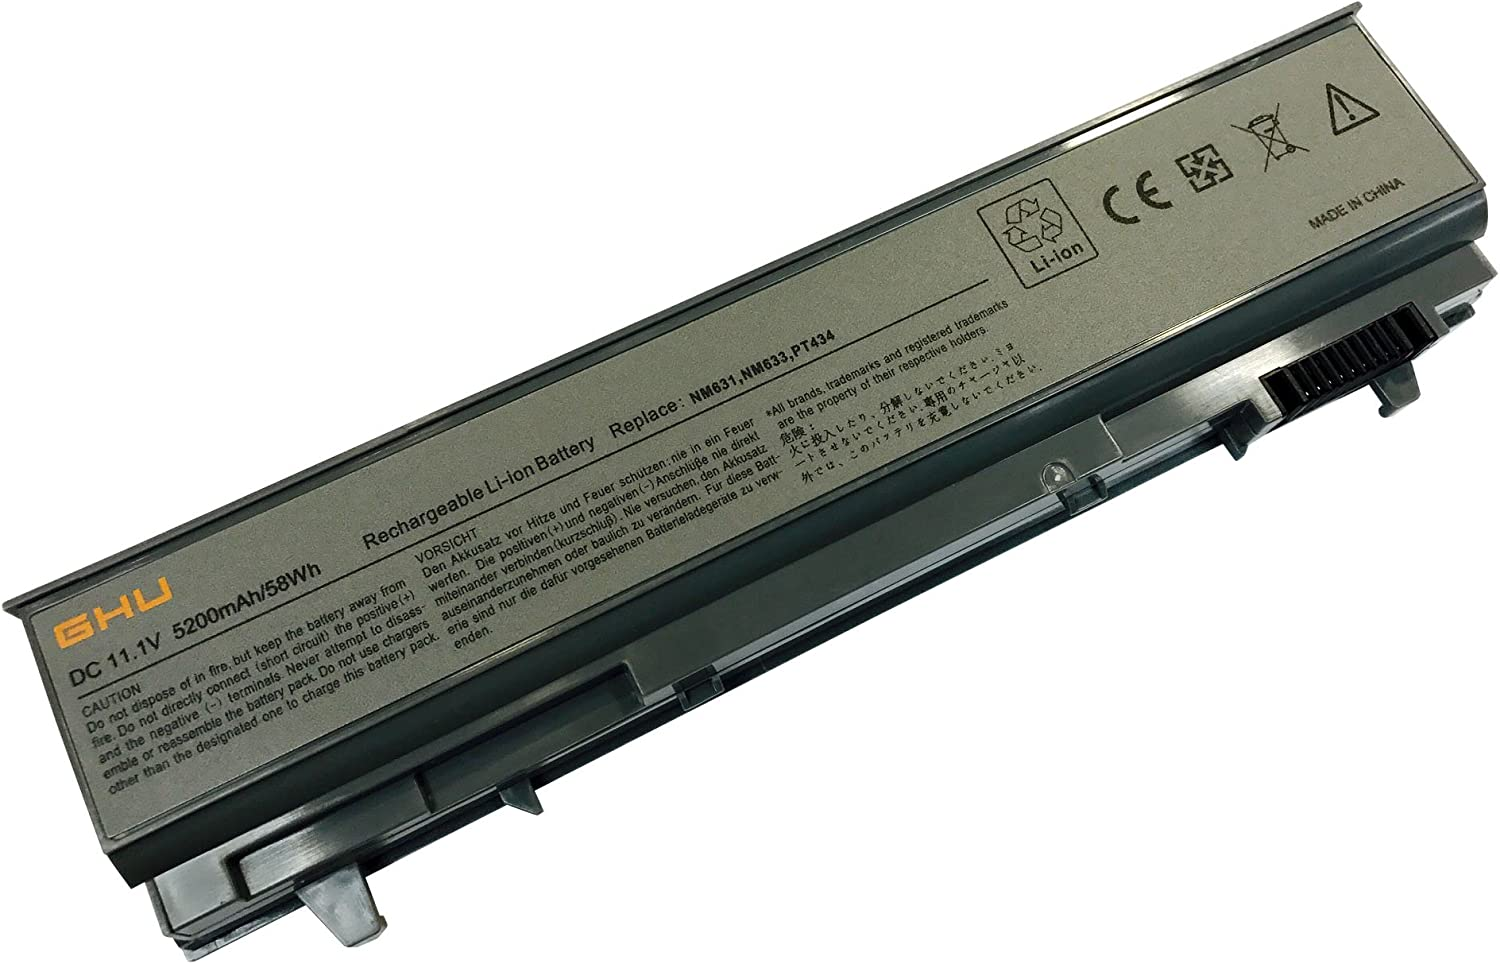 New GHU Battery 58 WHR 6-Cell 4M529 PT434 KY265 Compatible with Dell Latitude E6400 E6410 e6500 e6510 Precision m4500 m4400 Fit PN 4n369 nm631 FU444 FU441 FU571 W1193 F8TTW KY266 KY470